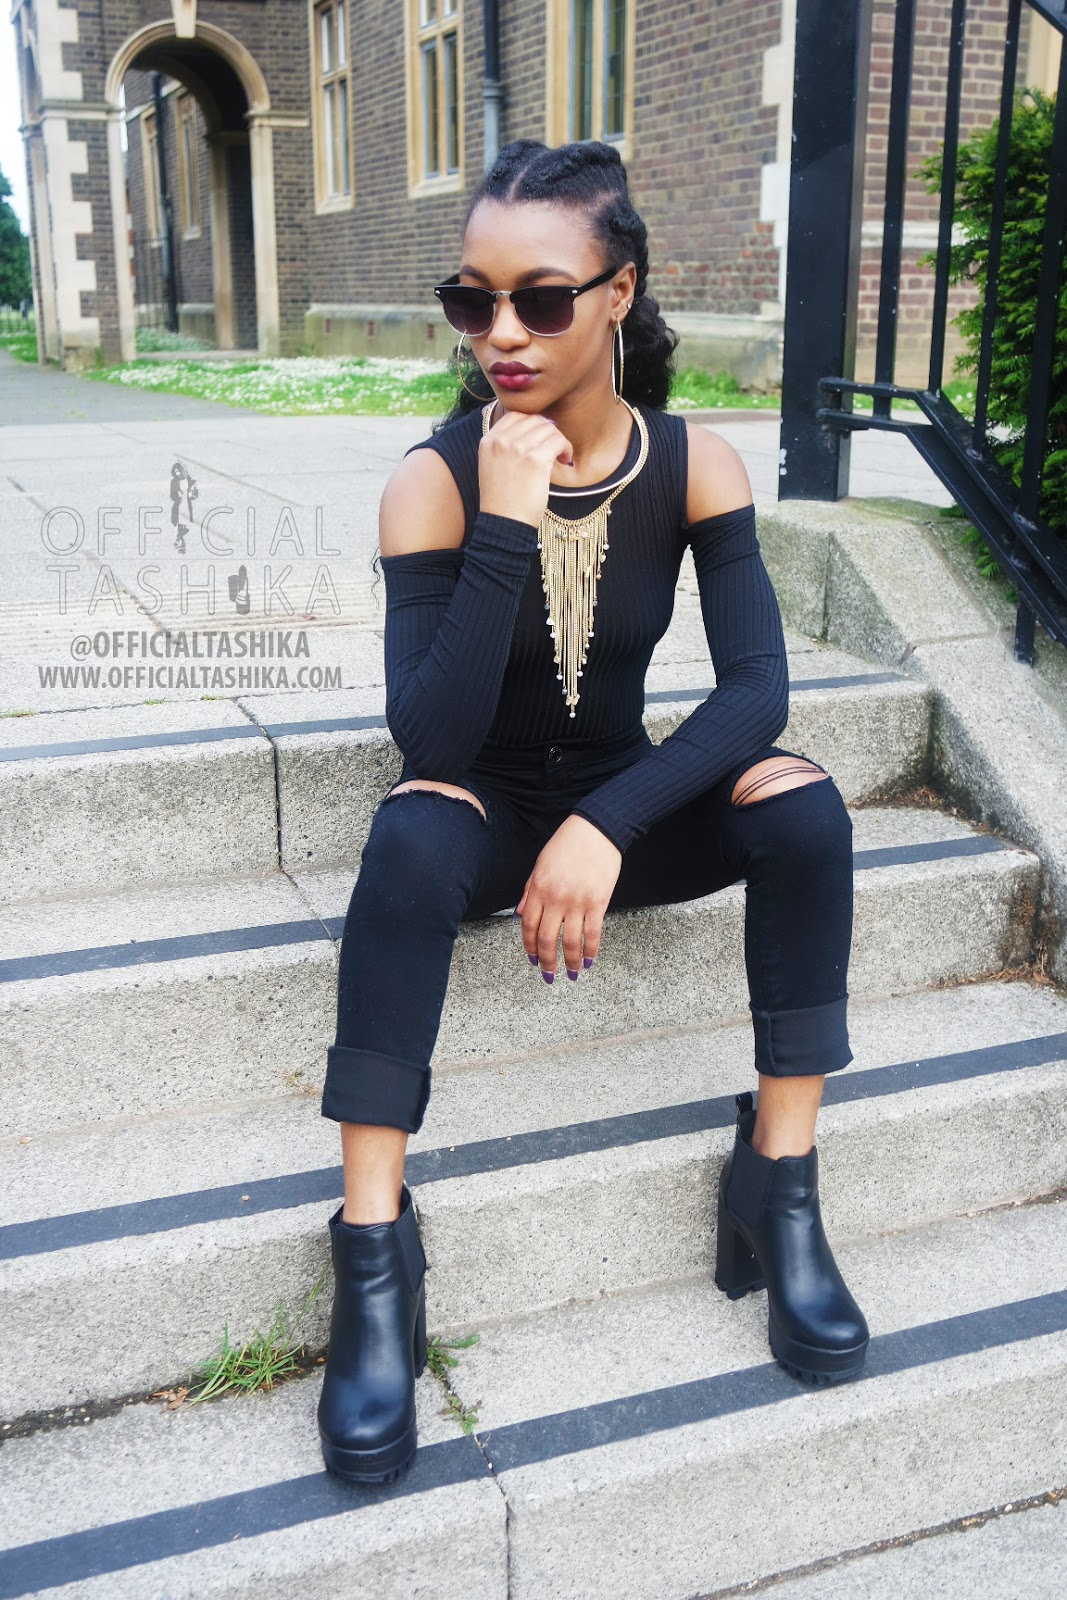 Tashika Bailey | Making A Statement X Slaying In Black